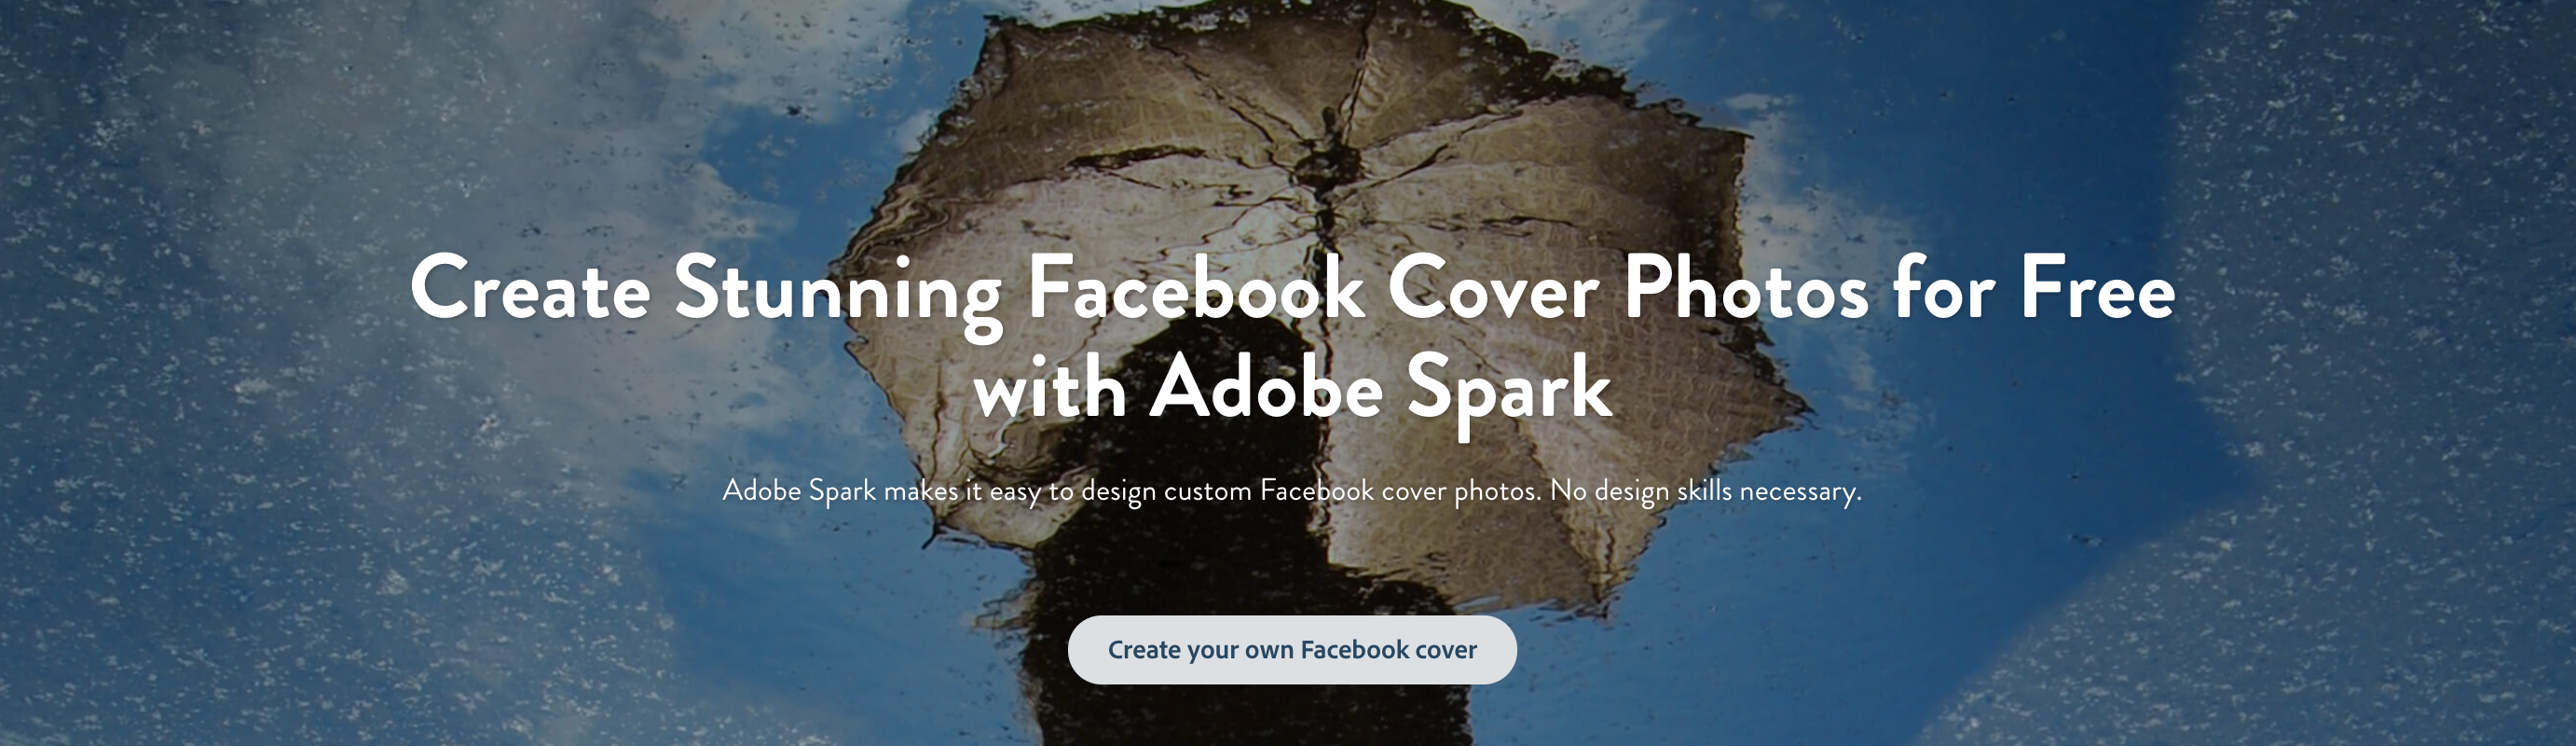 adobe spark s free online facebook cover maker helps you create